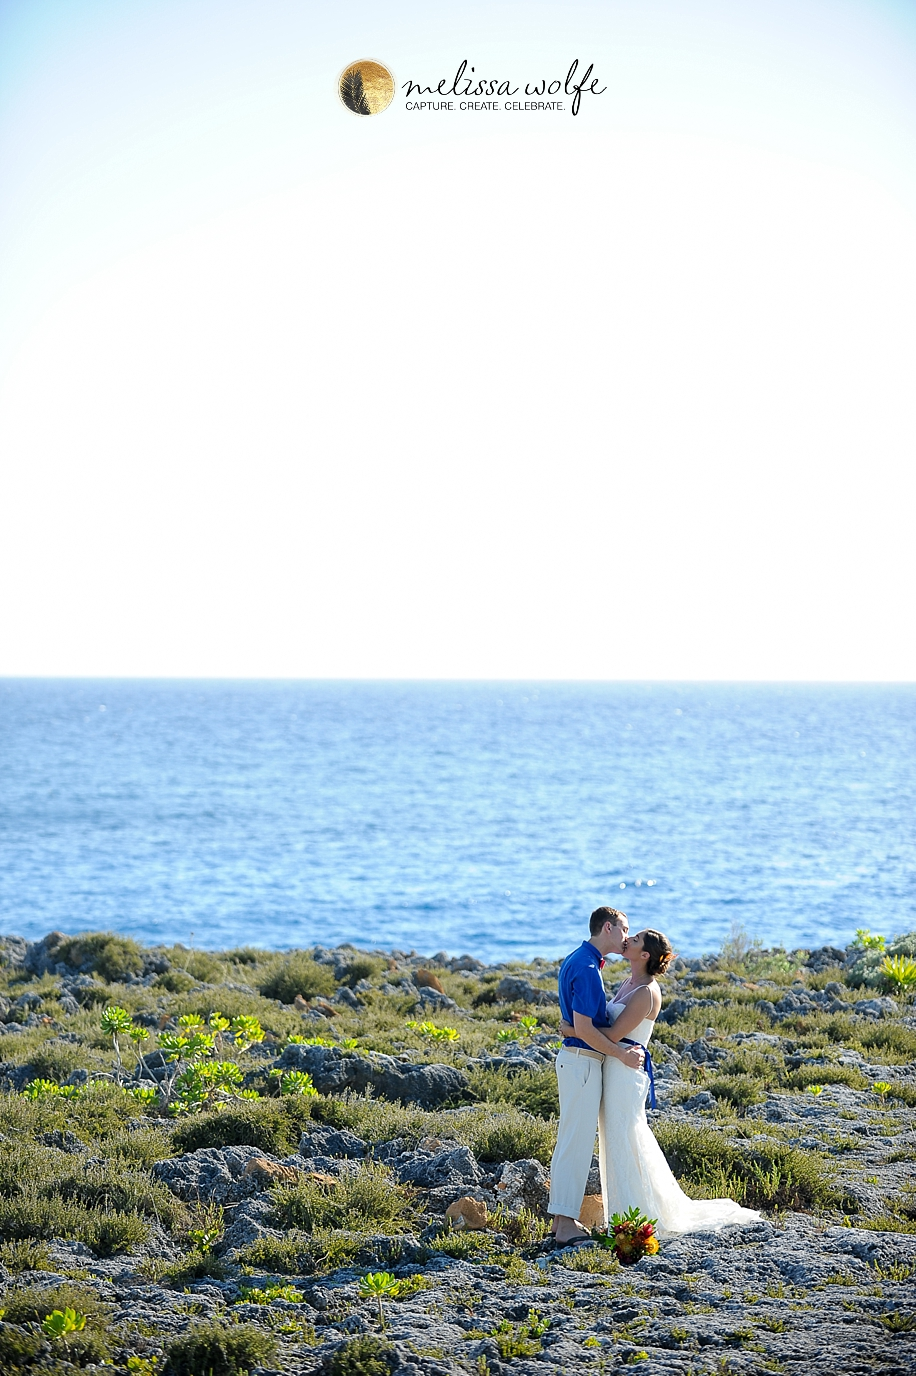 Grand Cayman, Cayman Islands Wedding by Melissa Wolfe